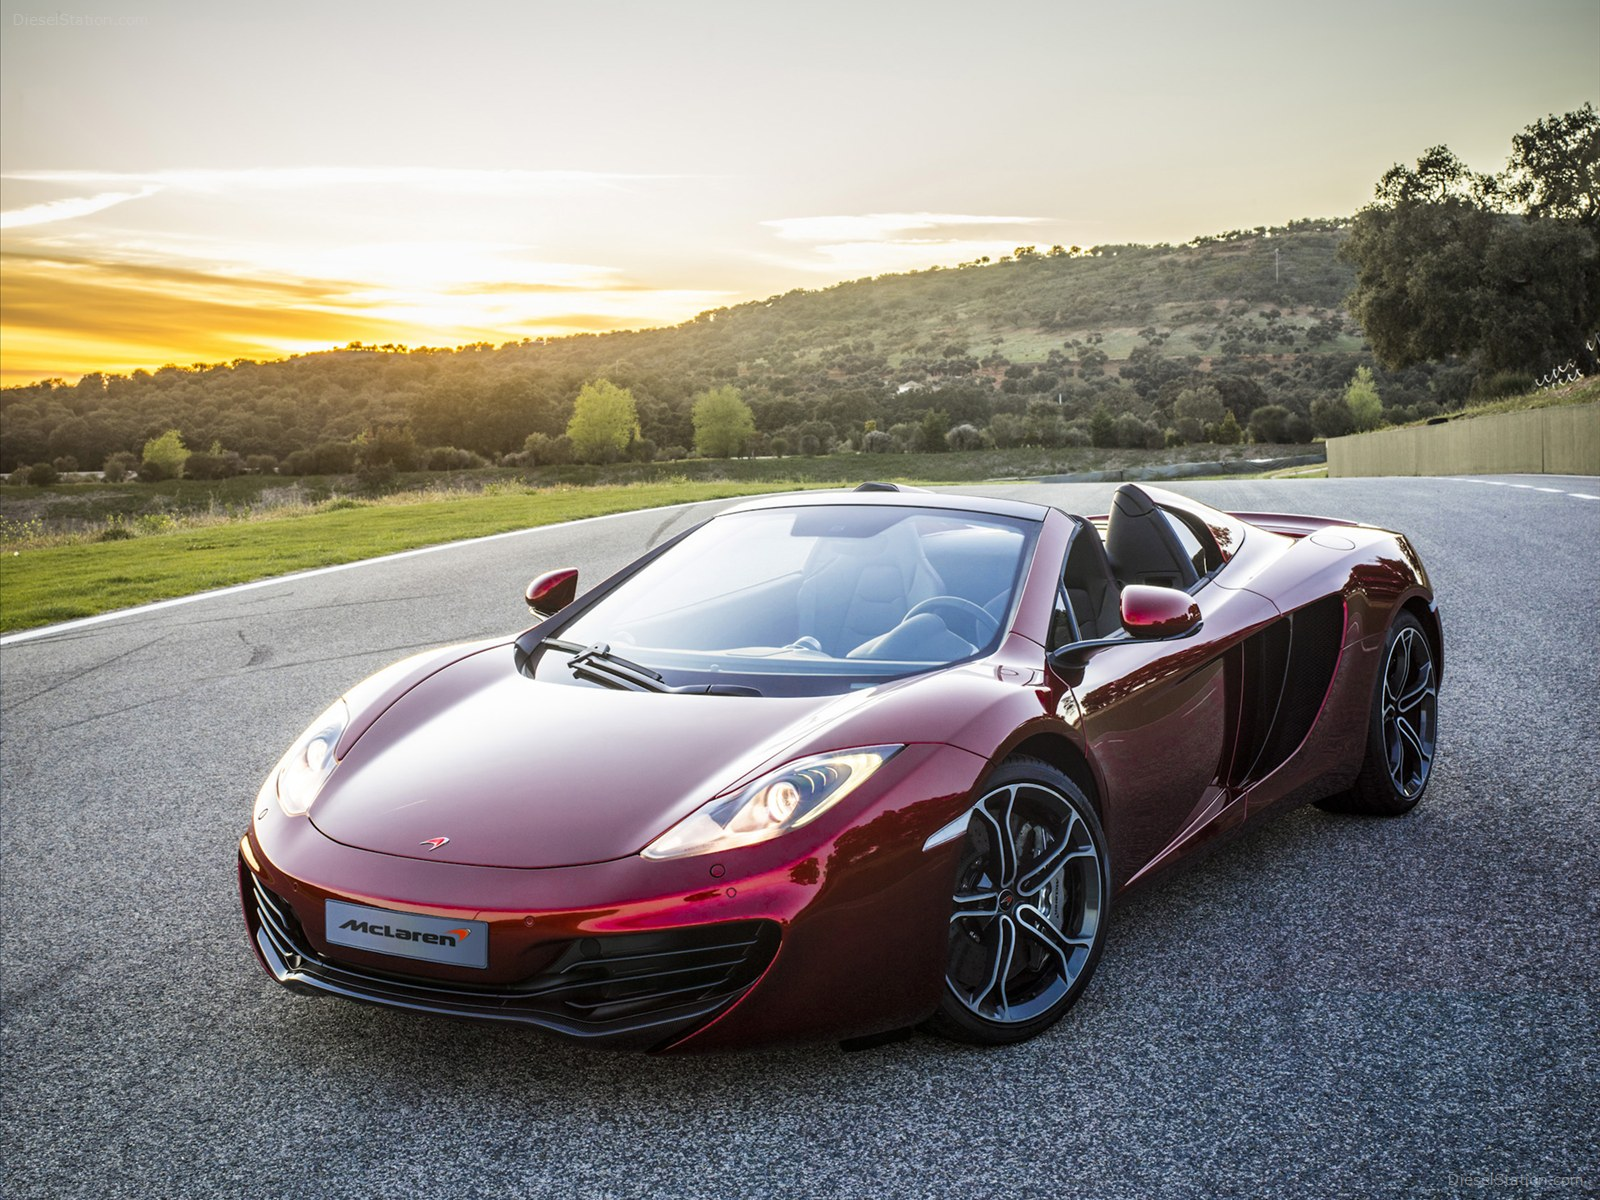 official price of new mclaren 12c spider. Black Bedroom Furniture Sets. Home Design Ideas